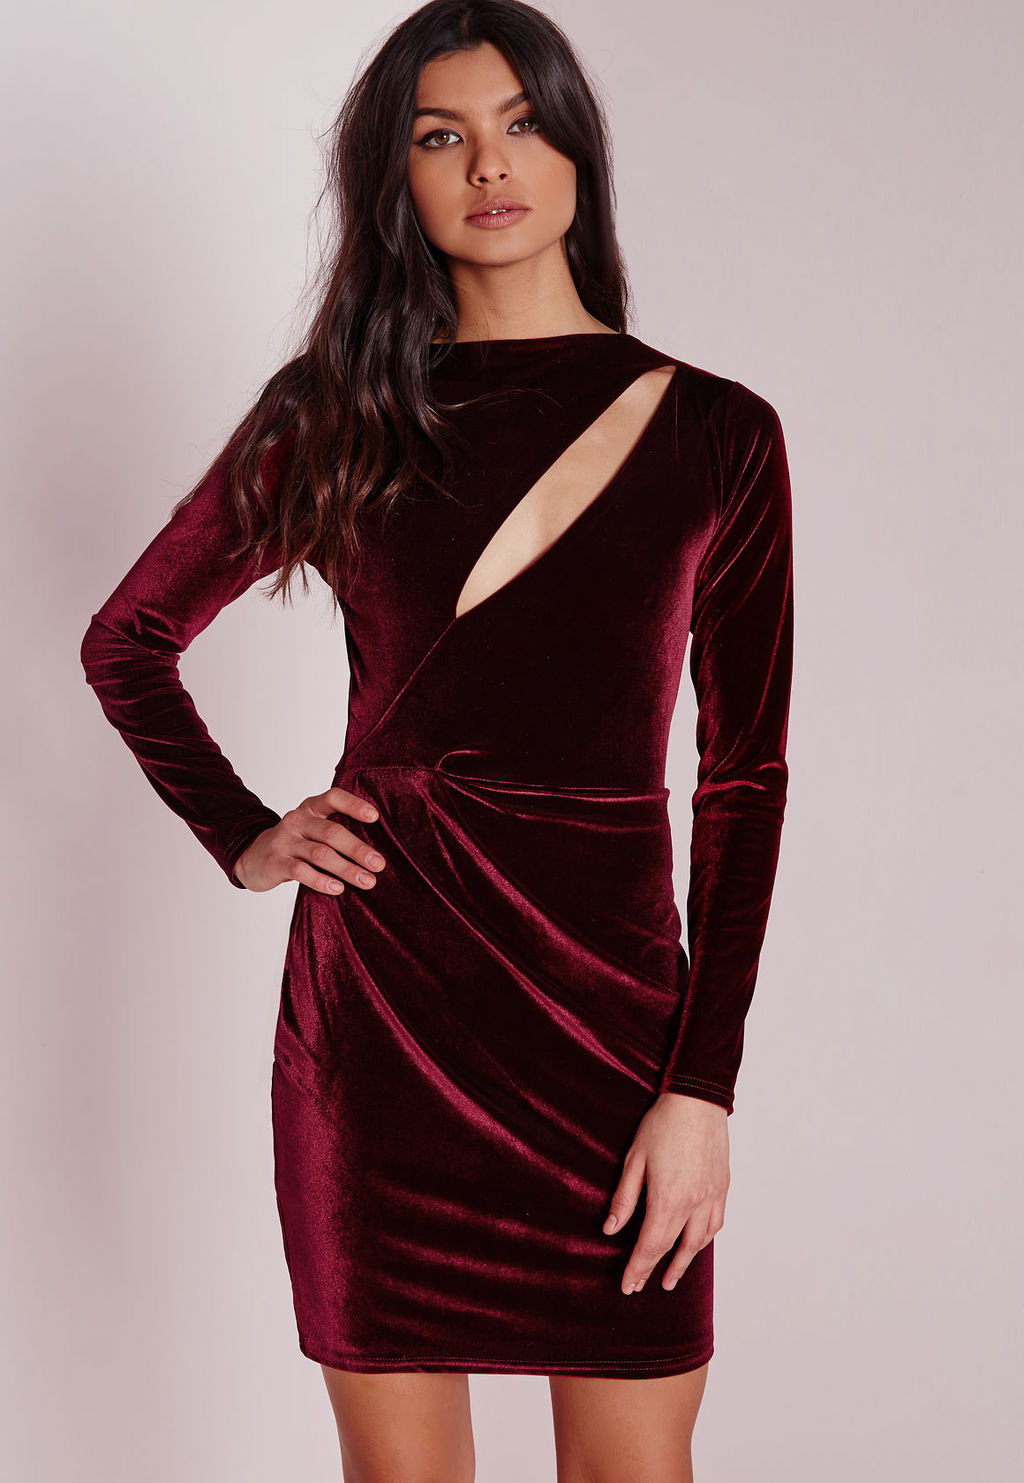 Velvet Long Sleeve Bodycon Dress Burgundy, Burgundy - length: mid thigh; neckline: slash/boat neckline; pattern: plain; style: bodycon; predominant colour: burgundy; occasions: evening; fit: body skimming; fibres: polyester/polyamide - stretch; sleeve length: long sleeve; sleeve style: standard; pattern type: fabric; texture group: velvet/fabrics with pile; season: a/w 2015; wardrobe: event